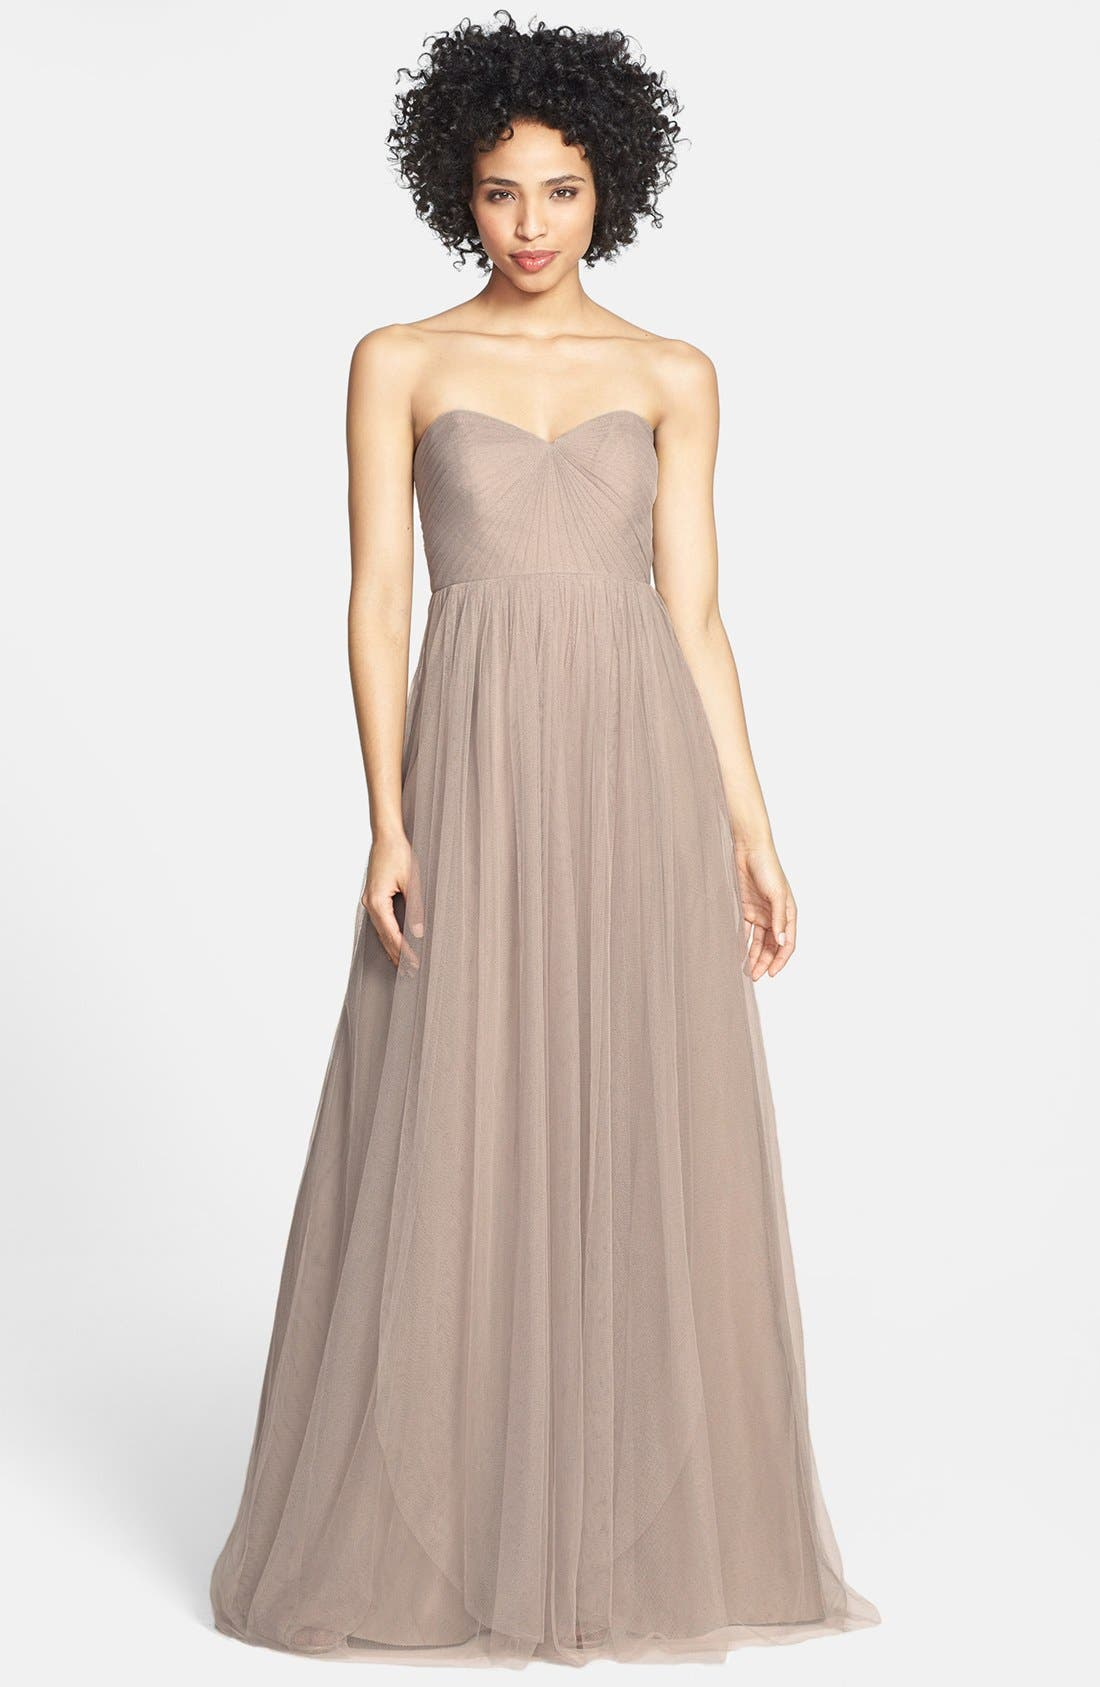 Annabelle Convertible Tulle Column Dress,                             Main thumbnail 15, color,